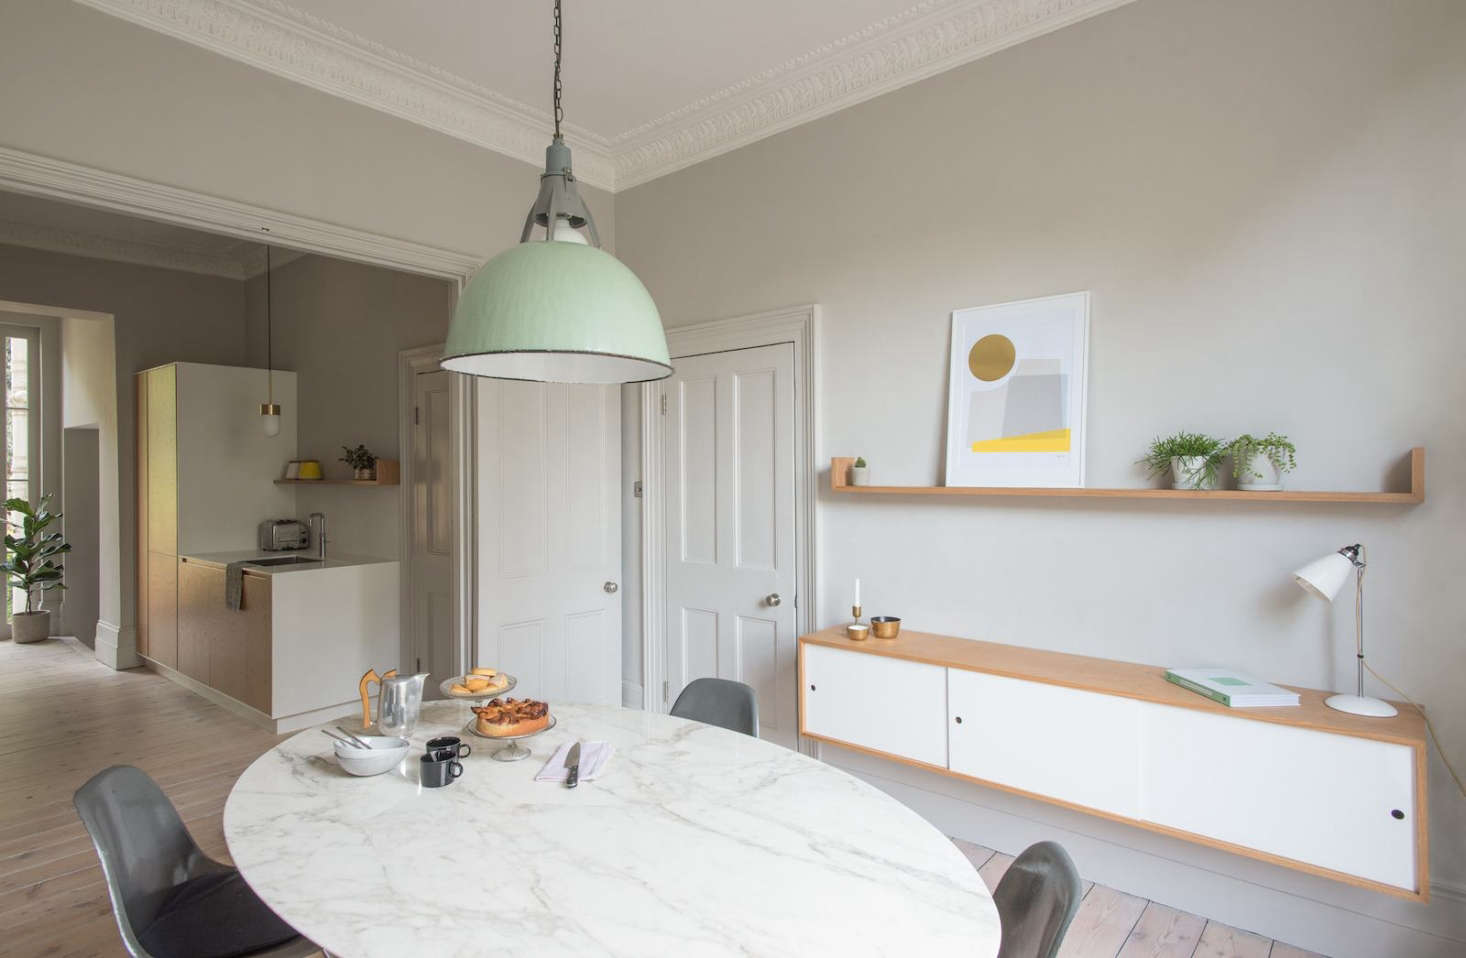 At the other end of the kitchen is a small dining room with a marbleSaarinen Dining Table and a vintage, green enamel pendant light overhead.